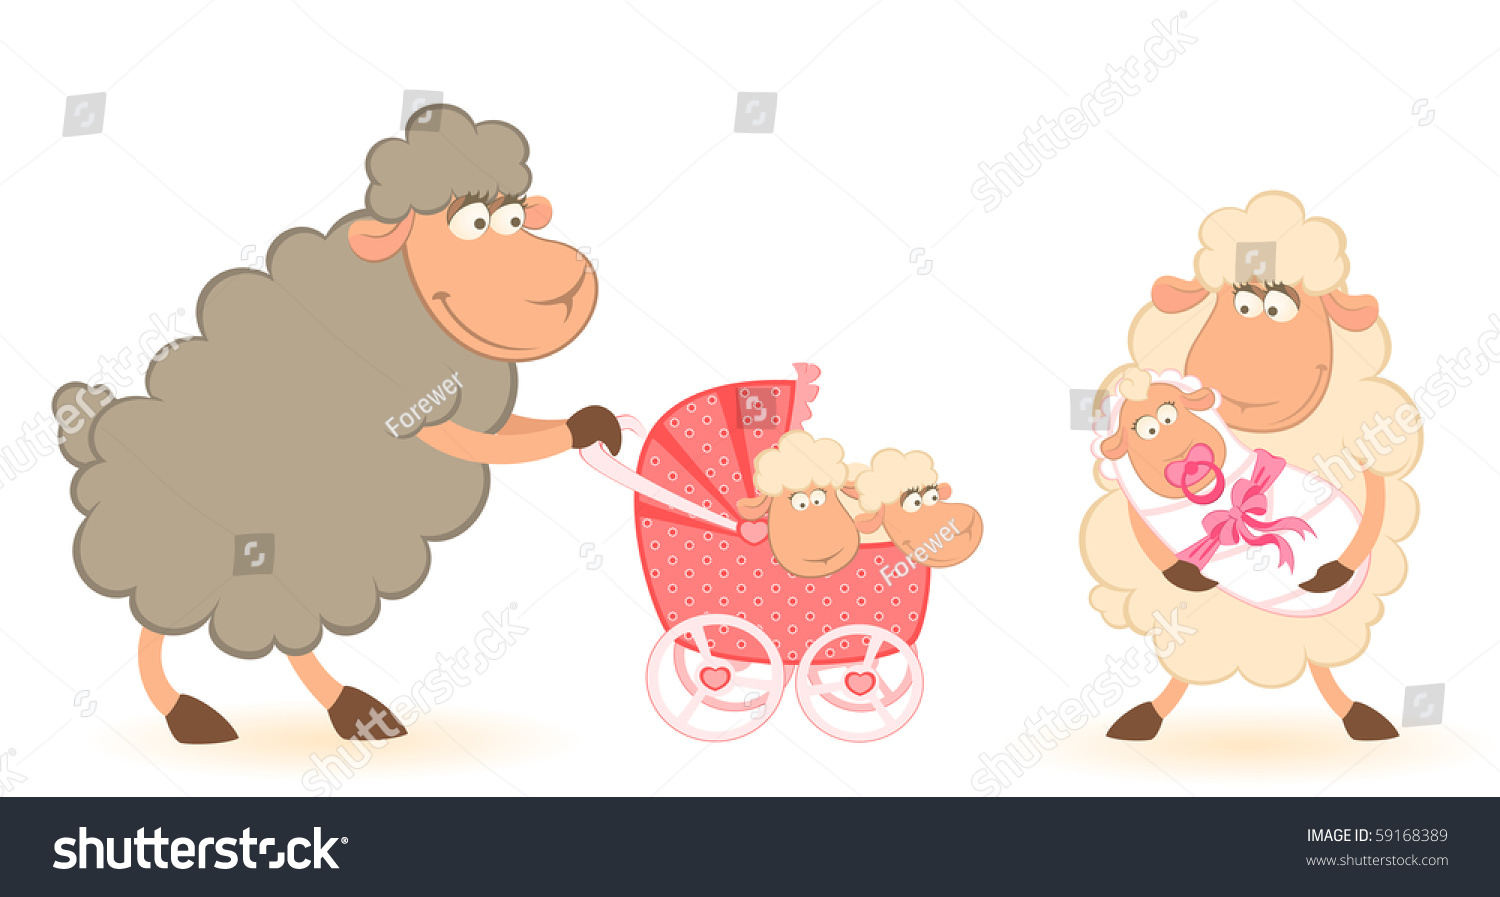 Carriage Pram Stroller Vector Cartoon Smiling Sheep Mother Infant Stock Vector